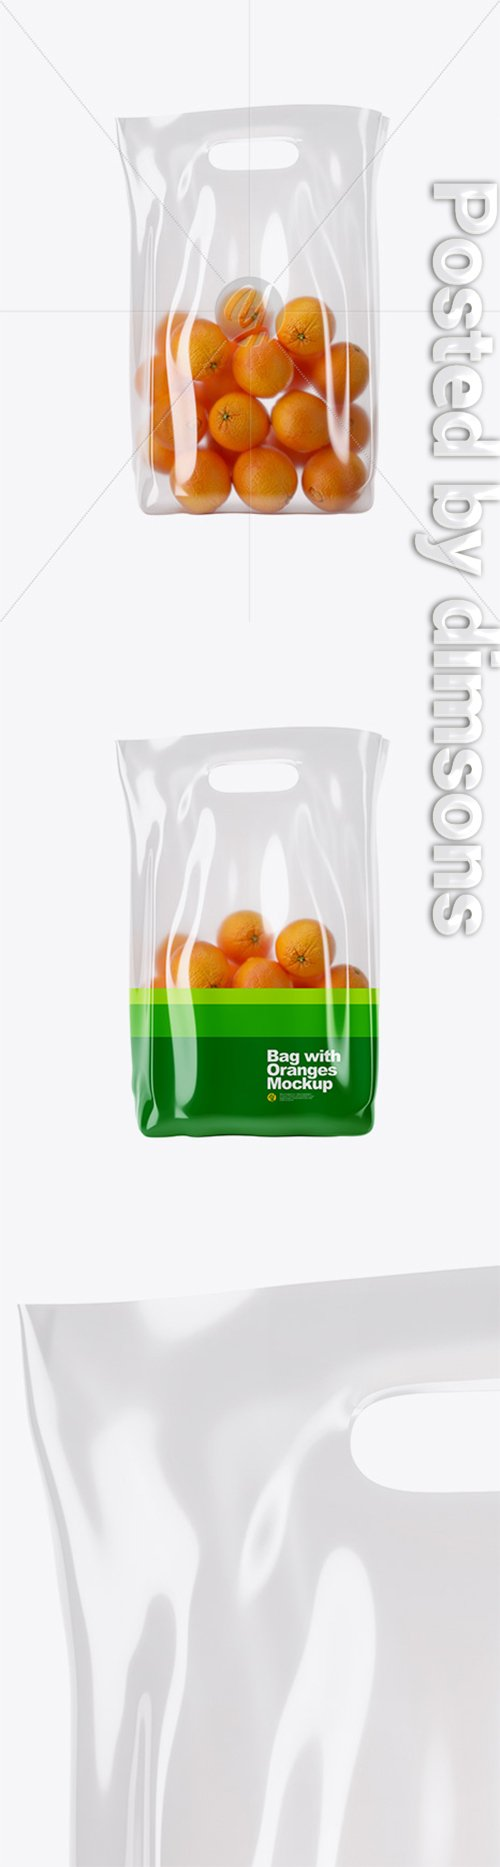 Glossy Bag with Oranges Mockup 30069 TIF